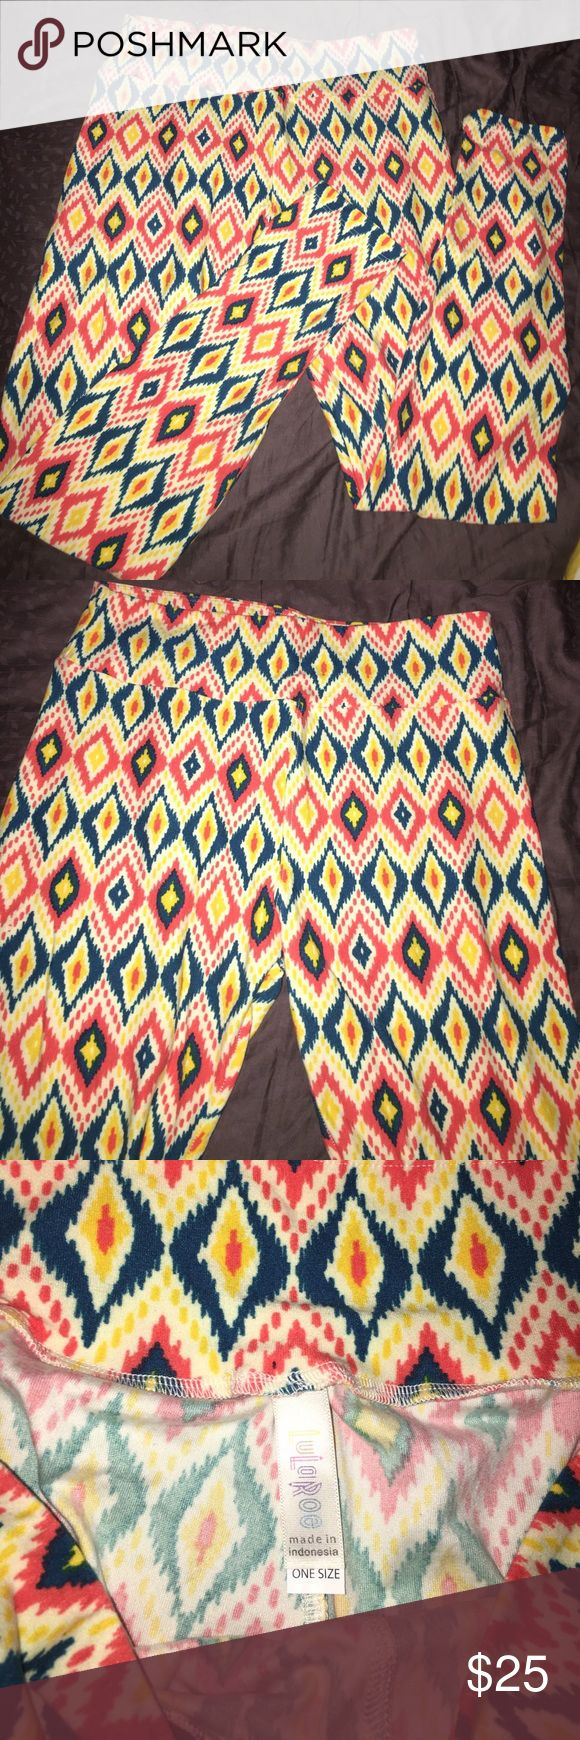 OS LuLRoe print leggings EUC. Worn and washed per LLR instructions. Crotch shot in photos very very very minimal piling starting, not noticeable unless very closely examined. Made in Indonesia. 💛💙💗 LuLaRoe Pants Leggings